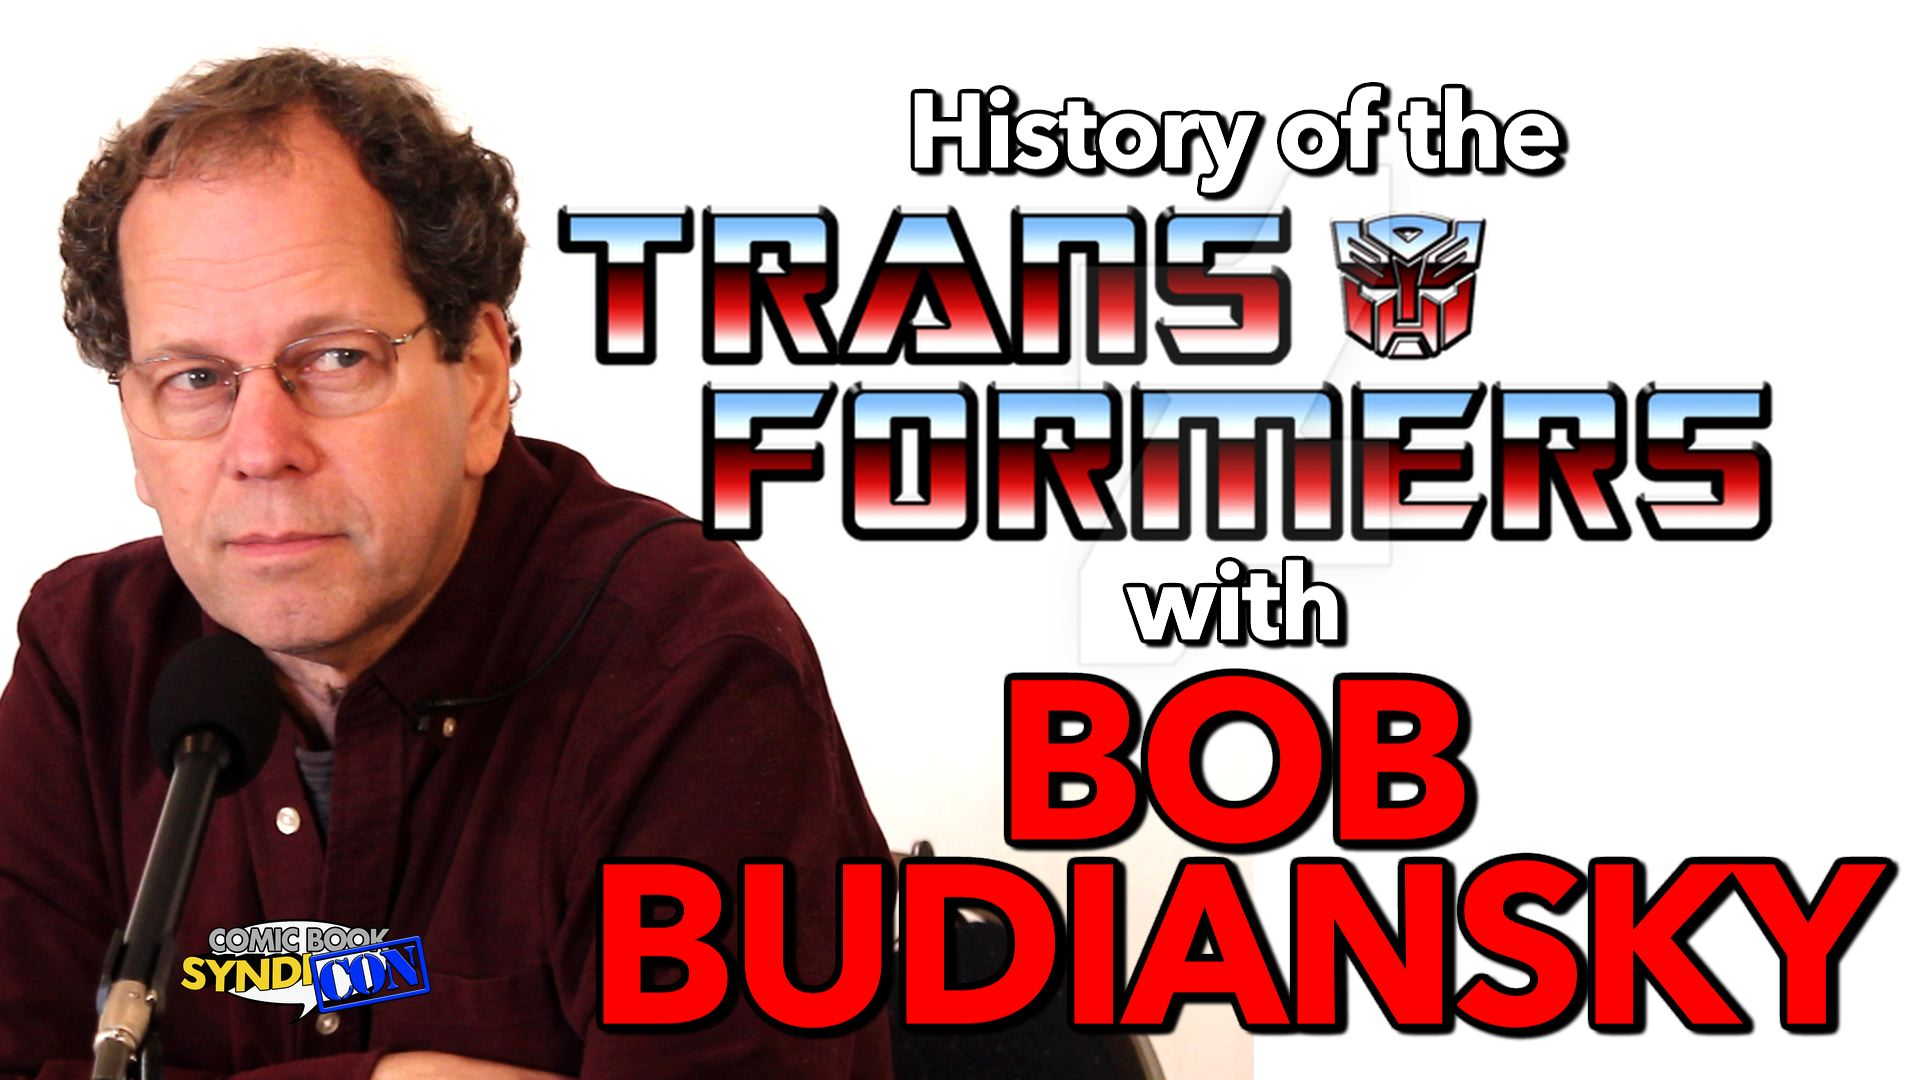 The History of the Transformers, with Bob Budiansky